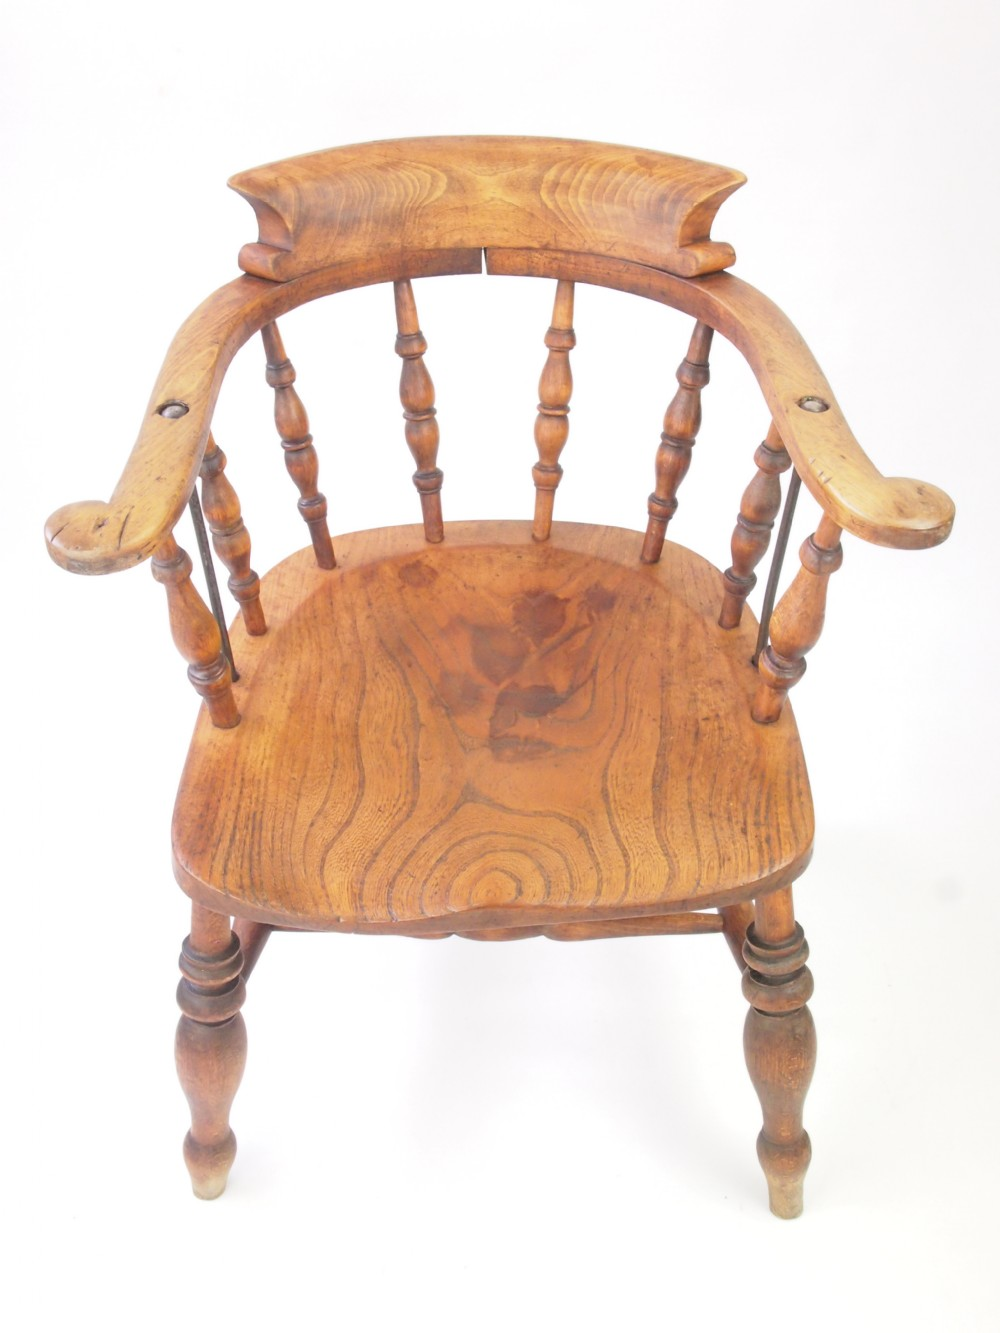 antique victorian desk chair elm smokers bow captains chair kitchen chair kitchen chair antique victorian desk chair elm smokers bow captains chair kitchen chair